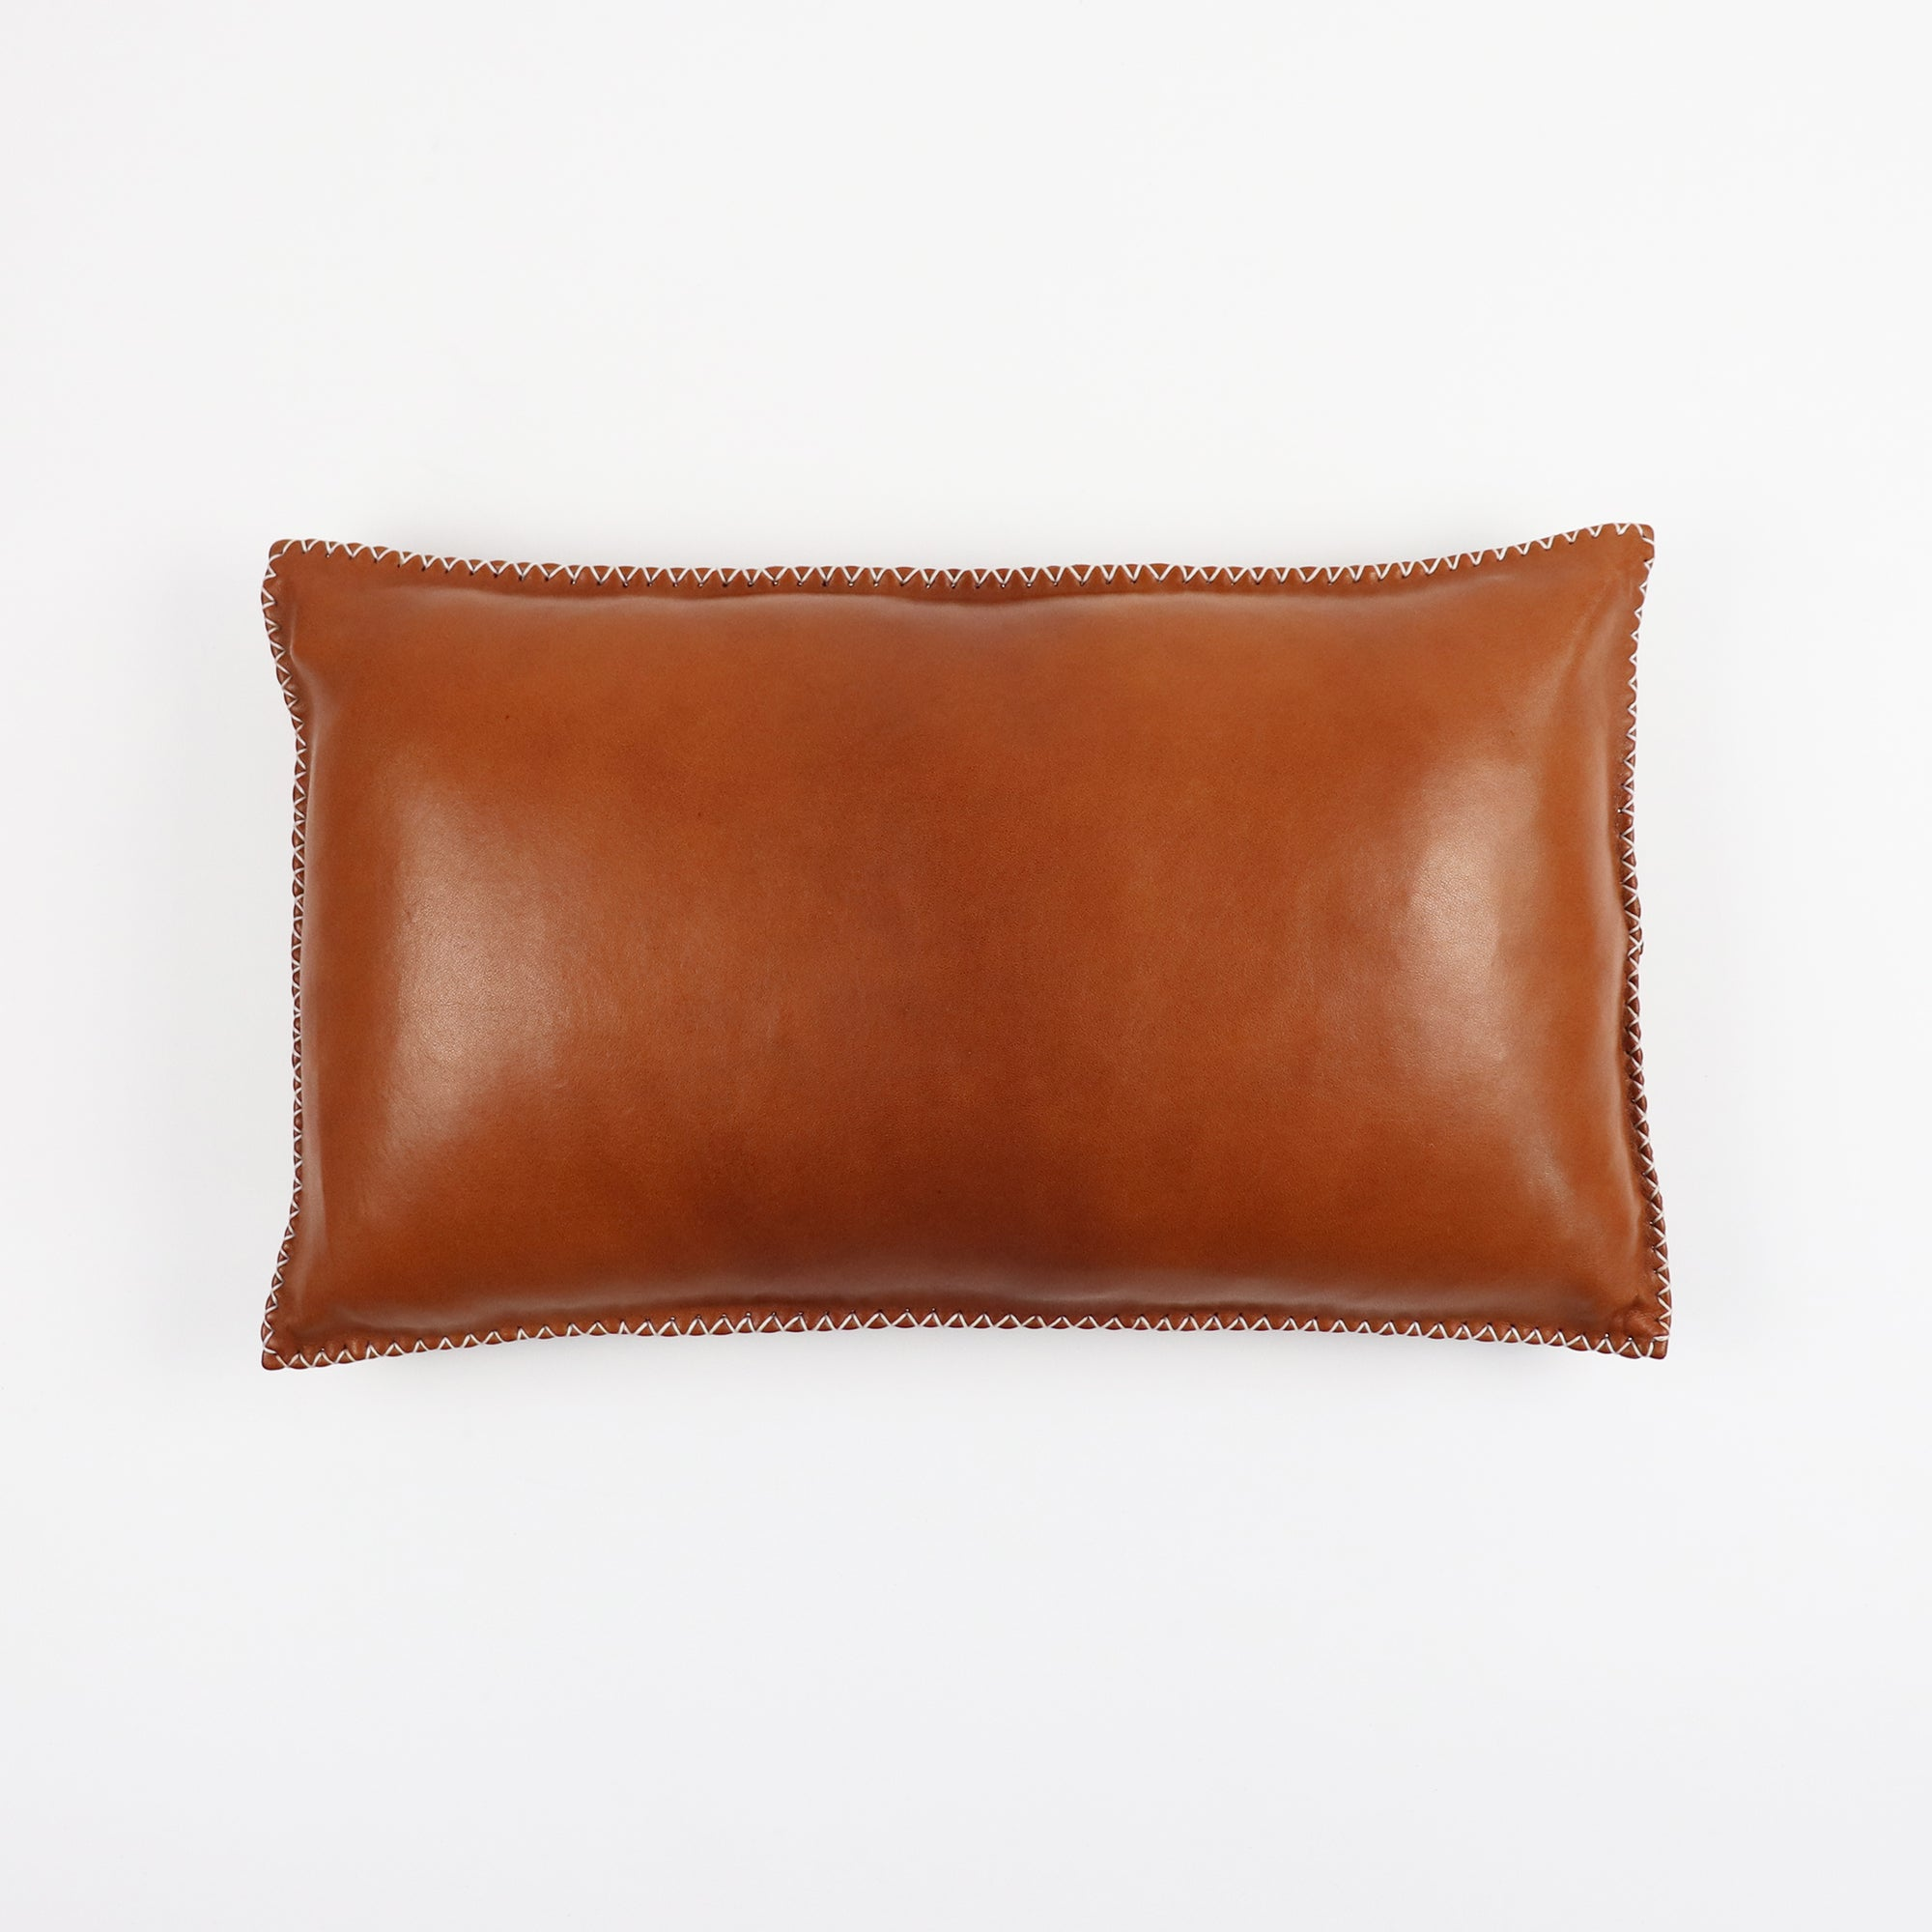 Tan leather pillow with cactus fibre stitching in rectangle shape on top of a white background